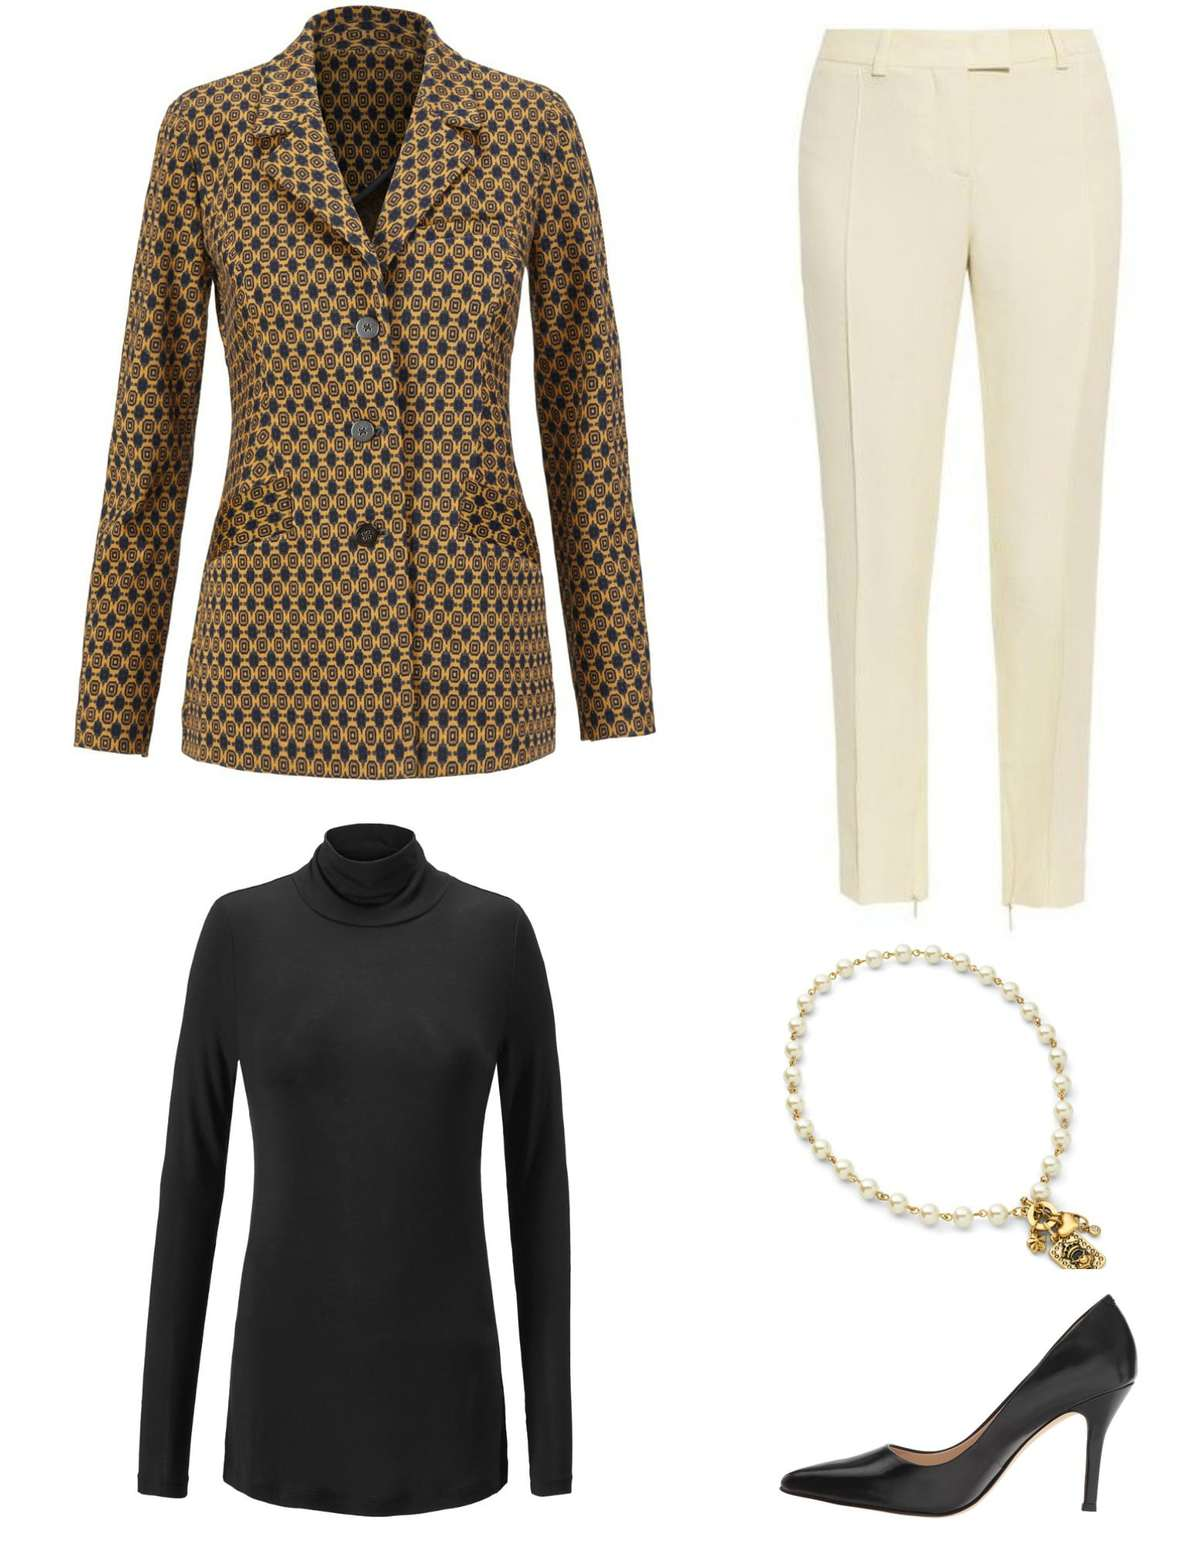 This outfit lets the cabi Standout Jacket stand out by pairing it with the cabi Layer Turtleneck, ivory ankle length trousers, the cabi Heritage Necklace, and classic black pointed toe pumps.